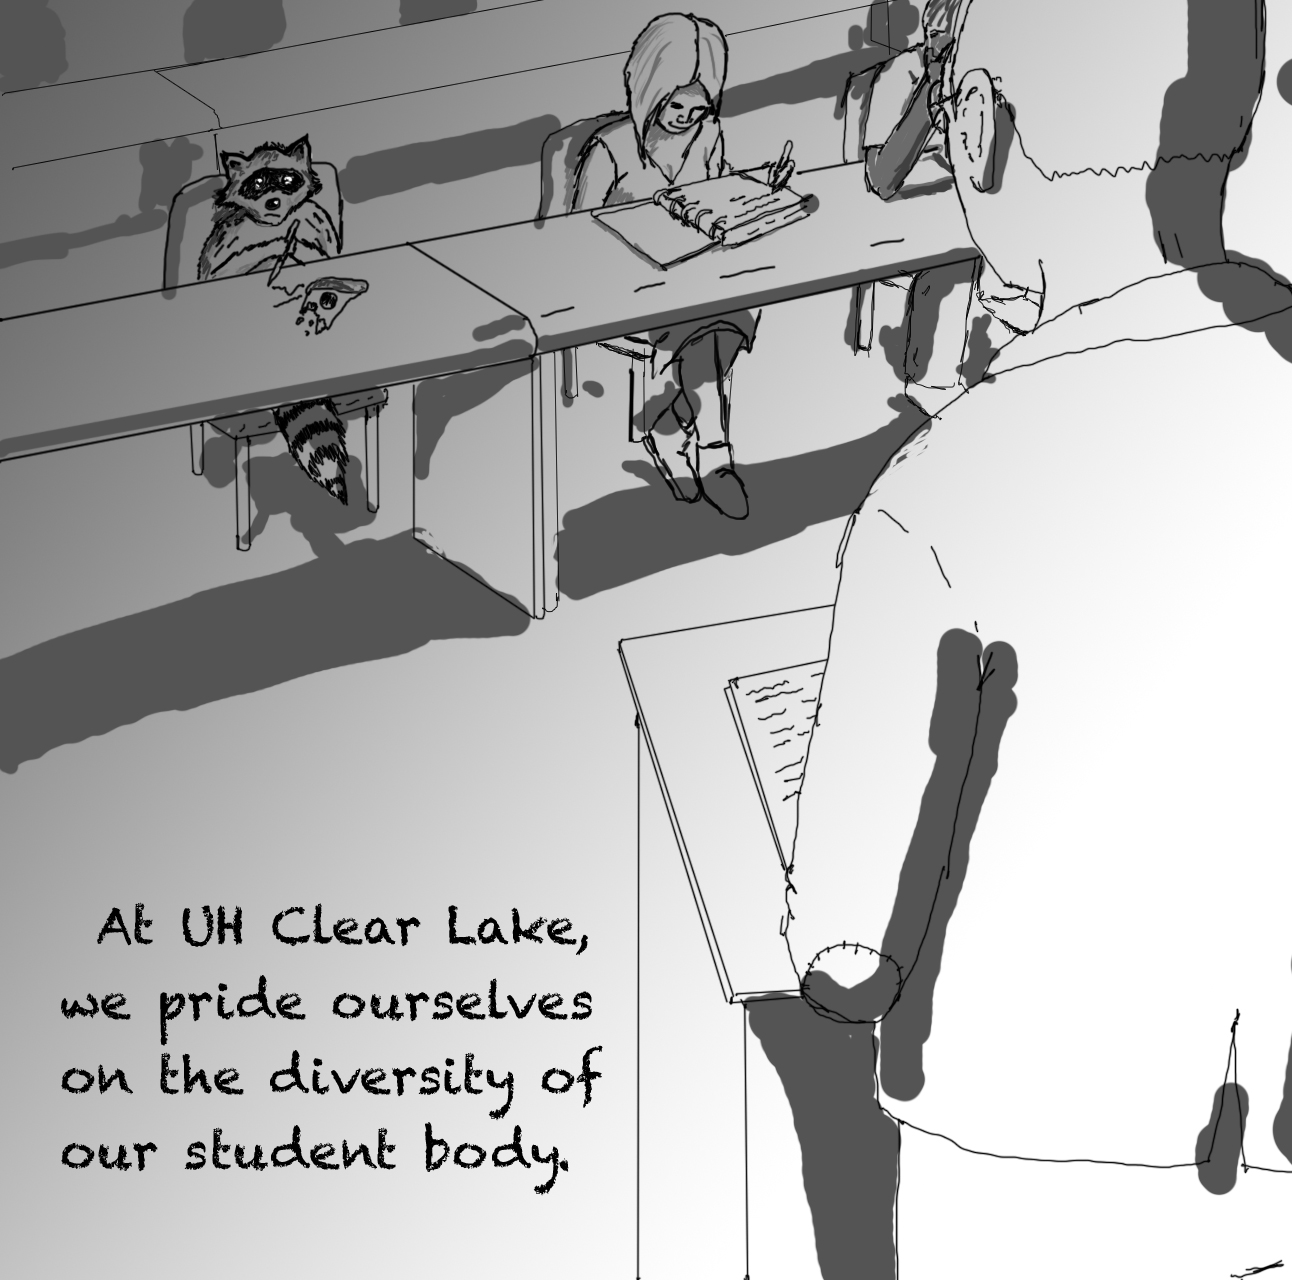 Cartoon: UHCL Diversity by art major Levi Rosen. Cartoon depicts a raccoon in a classroom setting with other students and a professor, with the caption 'At UH Clear Lake, we pride ourselves on the diversity of our student body.'